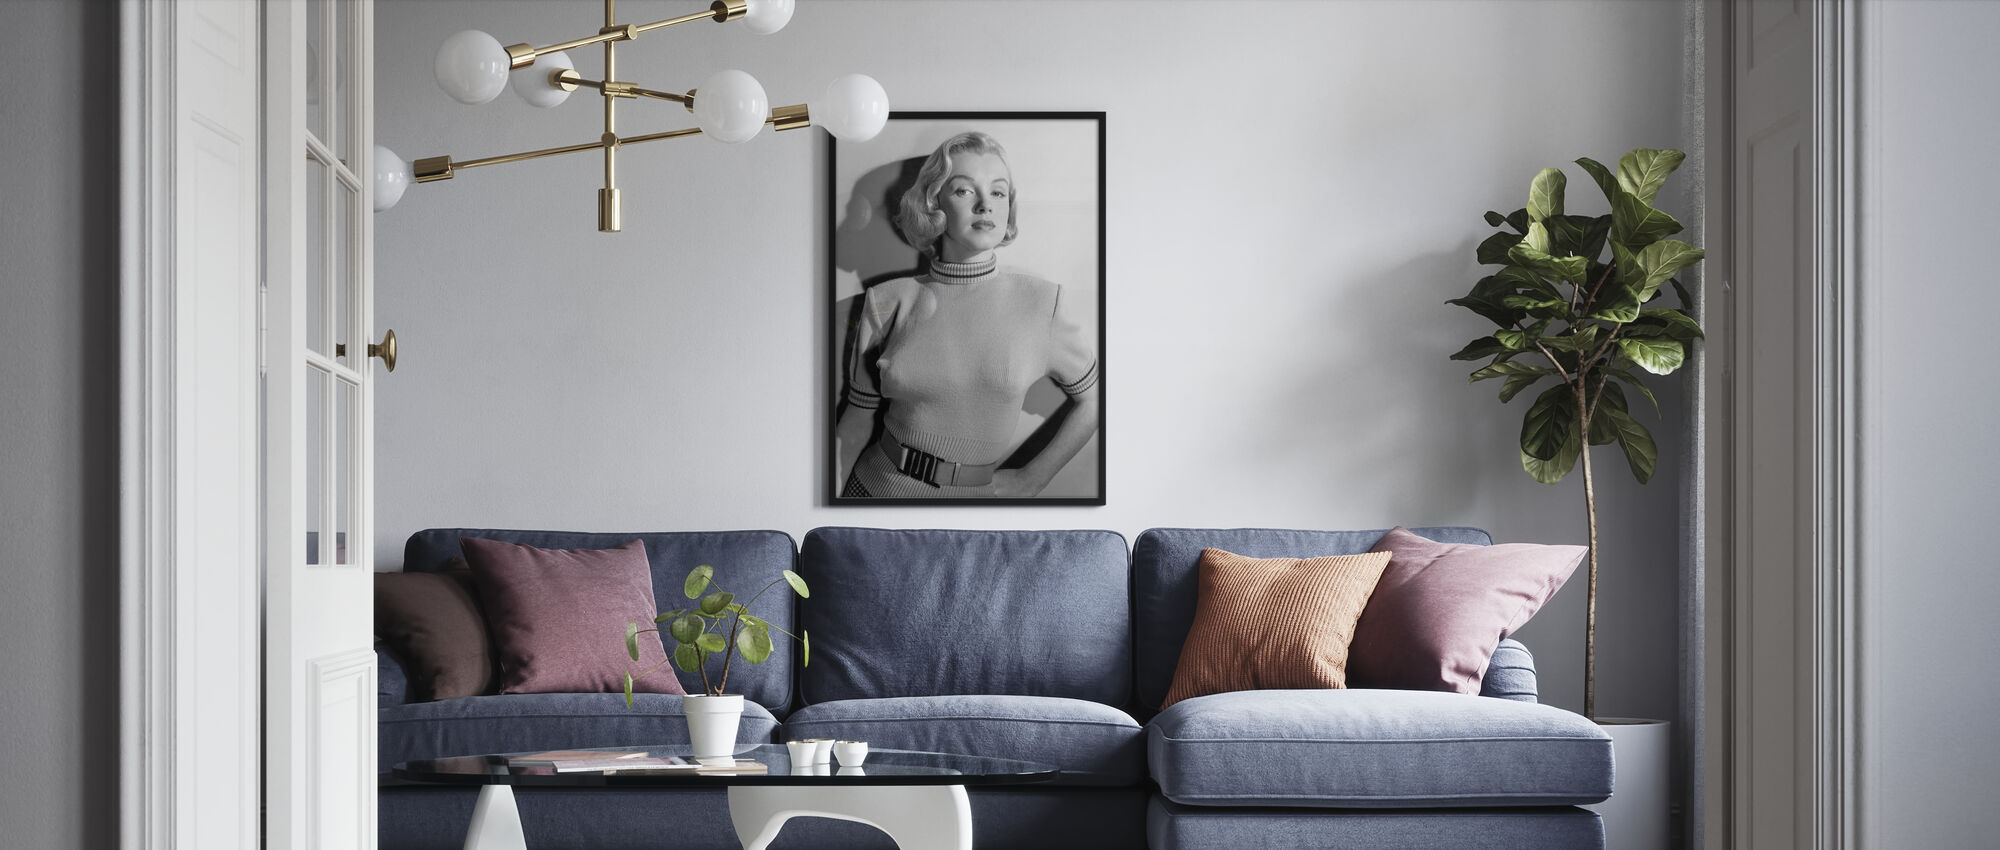 Home Town Story - Poster - Living Room